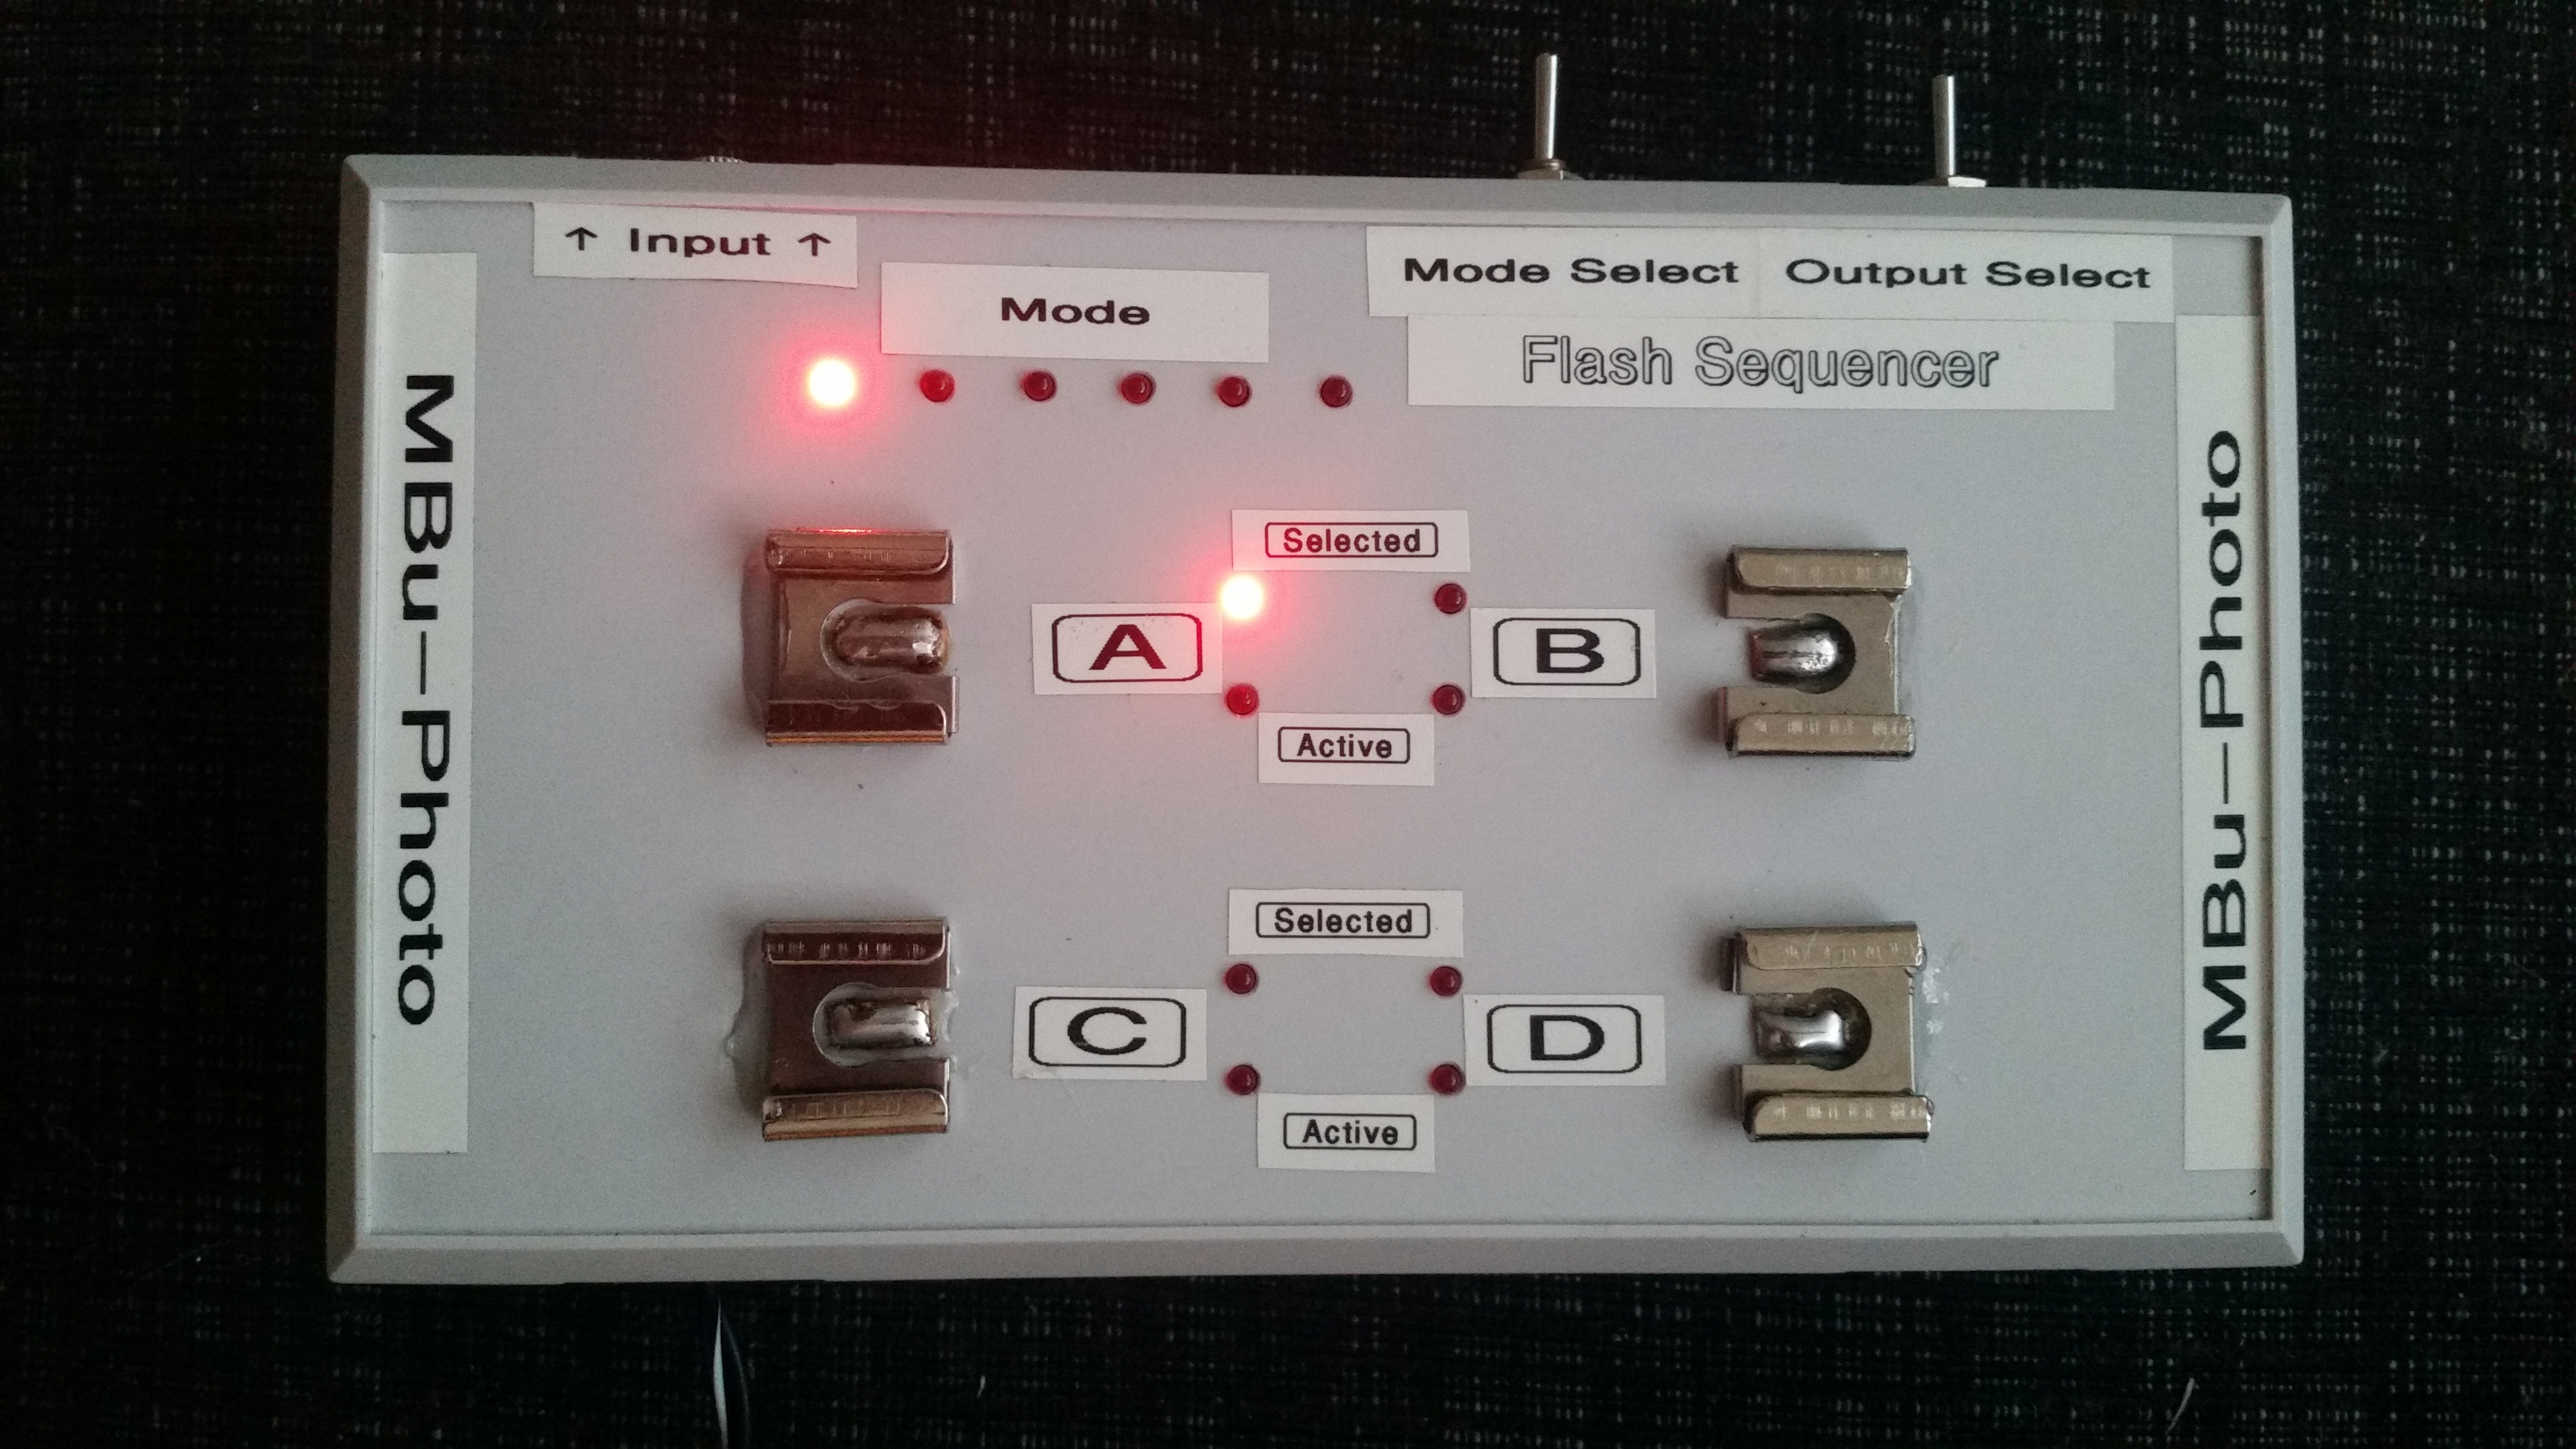 Flash Sequencer